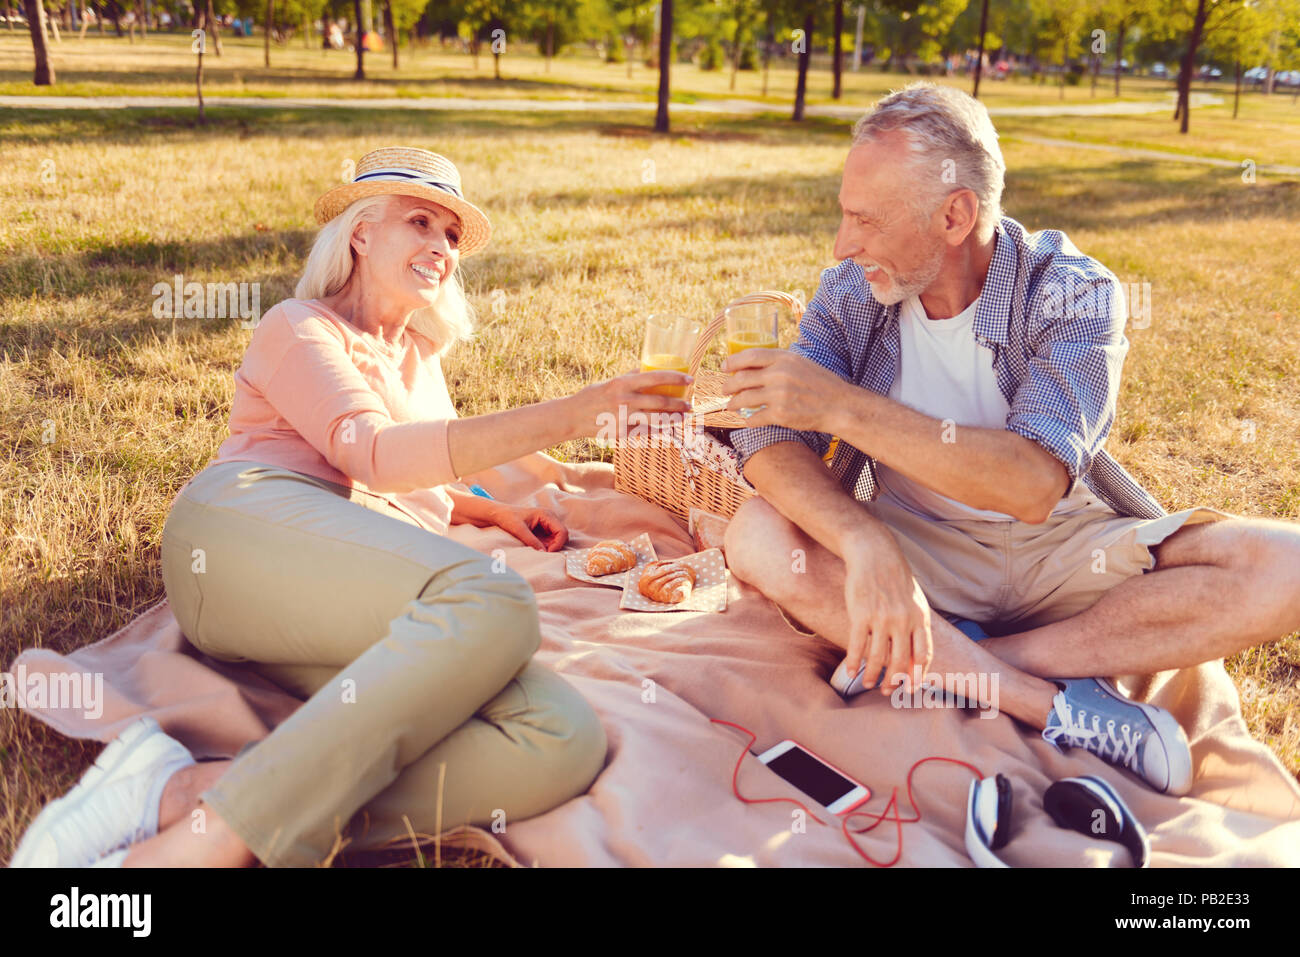 Relaxed retired couple going out for picnic - Stock Image